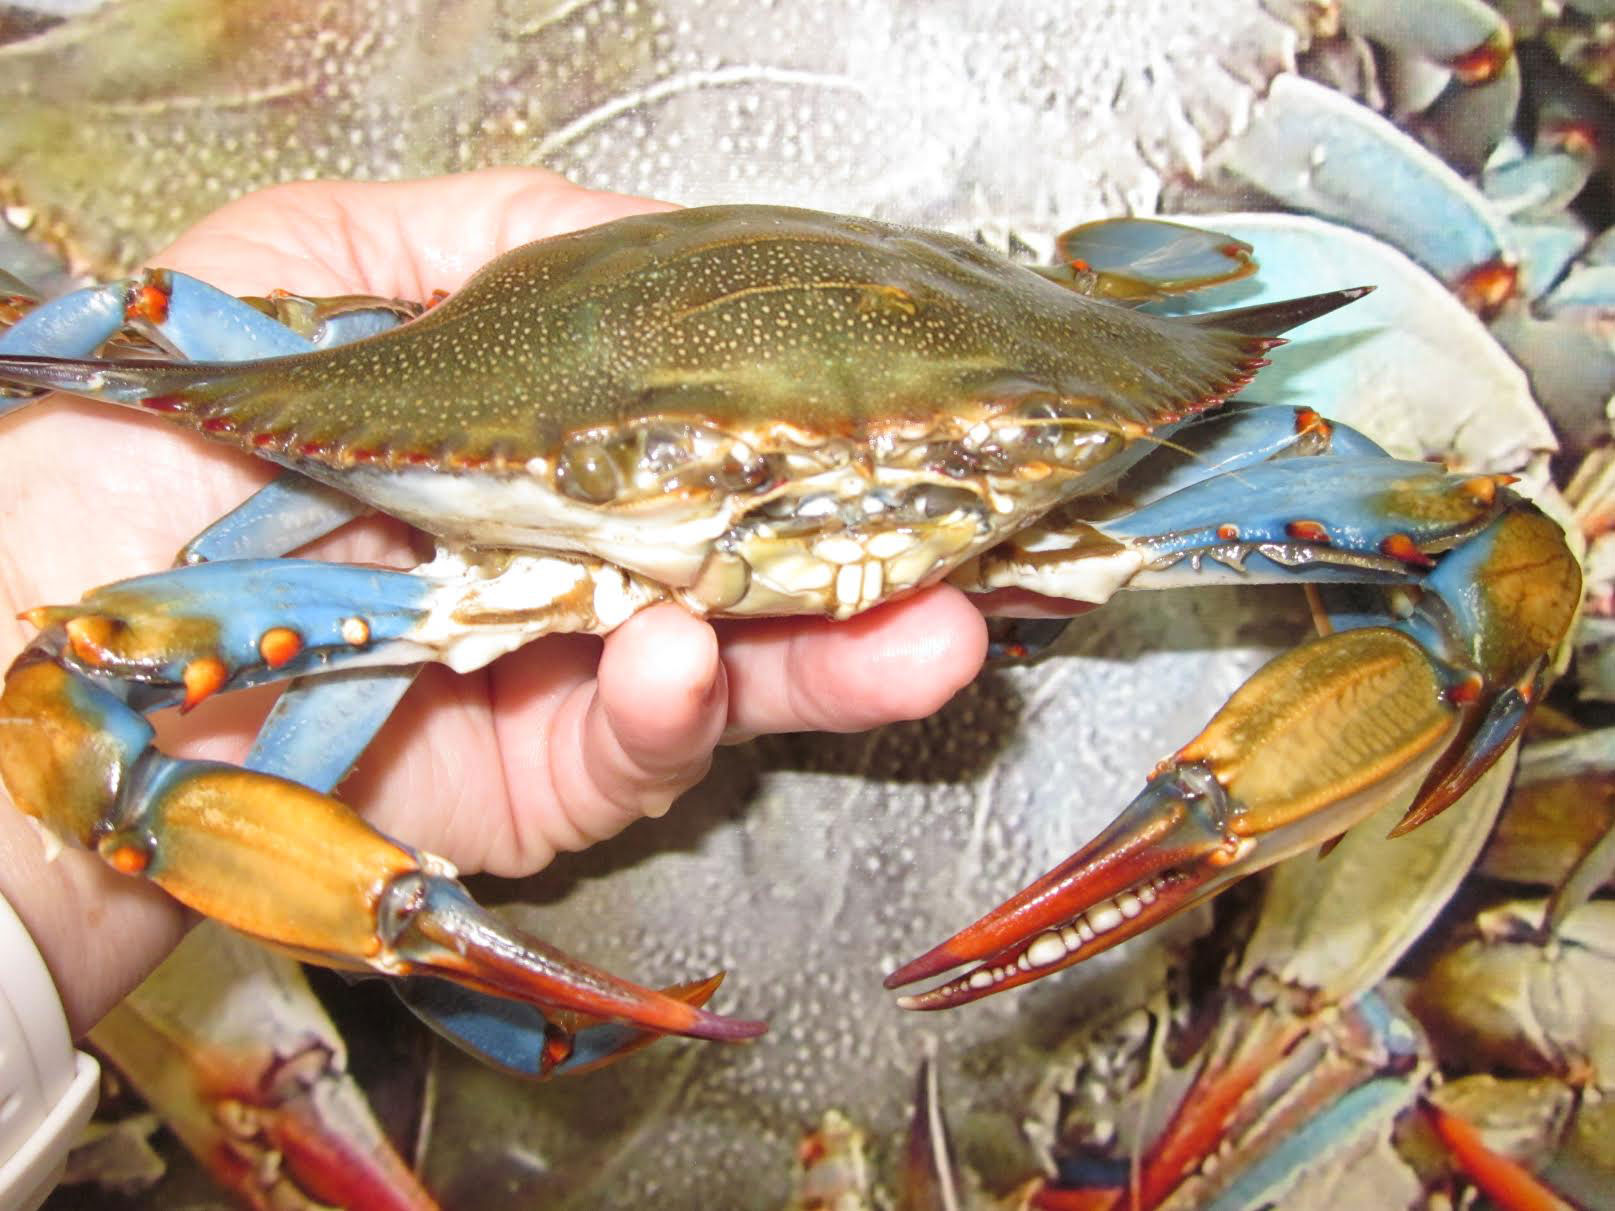 Freshwater fish maryland - Maryland Crab Season Is Great This Year Victoria S Seafood Crabs Victoria S Seafood Crabs